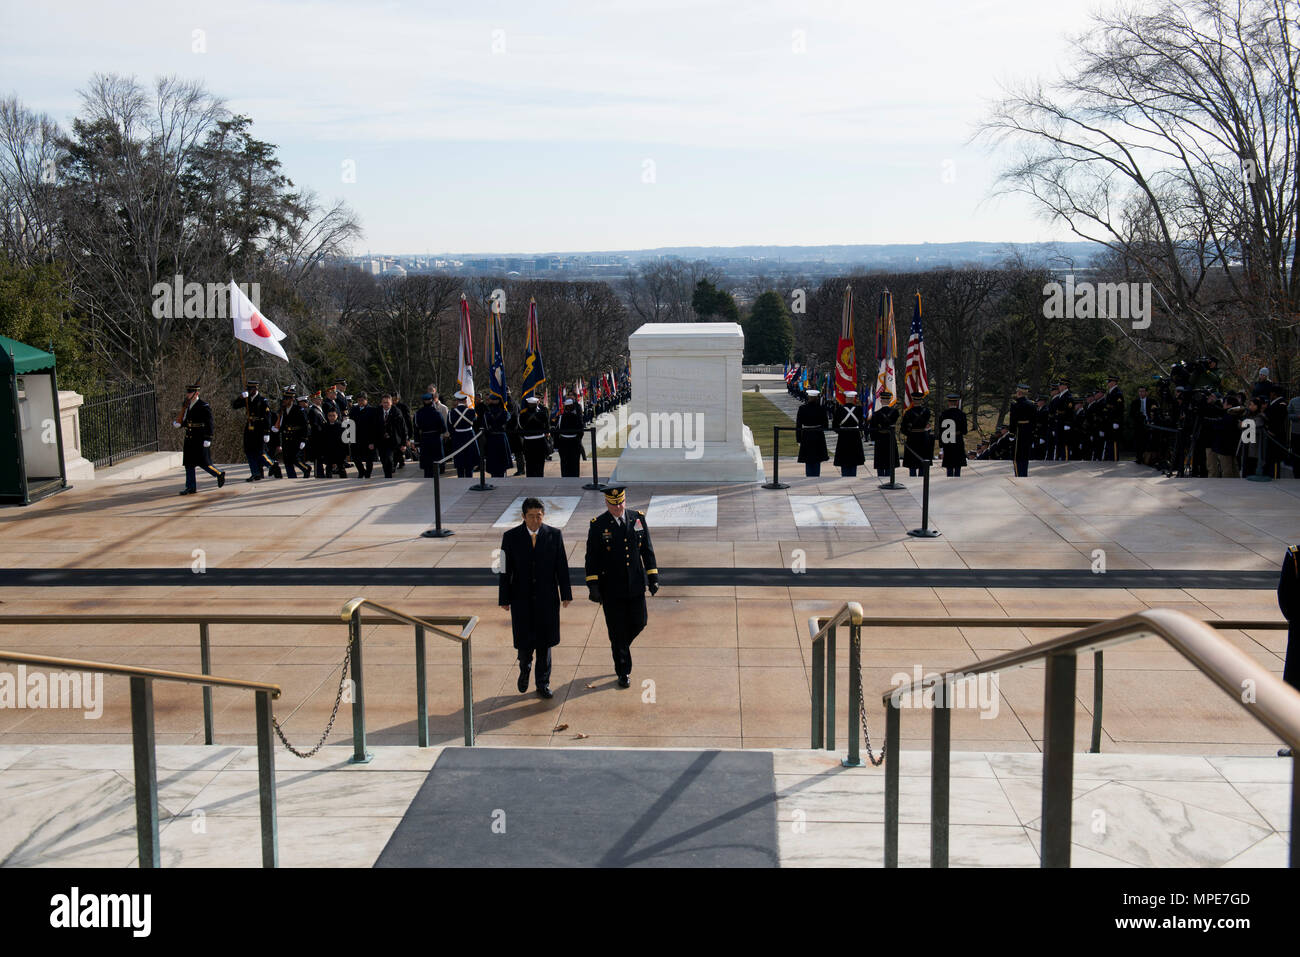 Shinzo Abe, left, prime minster of Japan, is escorted by Maj. Gen. Mark S. Inch, commanding general, U.S. Army Criminal Investigation Command and U.S. Army Correction Command, during a full-honors wreath ceremony at Arlington National Cemetery, Feb. 10, 2017, in Arlington, Va. Abe placed a wreath at the Tomb of the Unknown Soldier during the ceremony. (U.S. Army photo by Rachel Larue/Arlington National Cemetery/released) - Stock Image